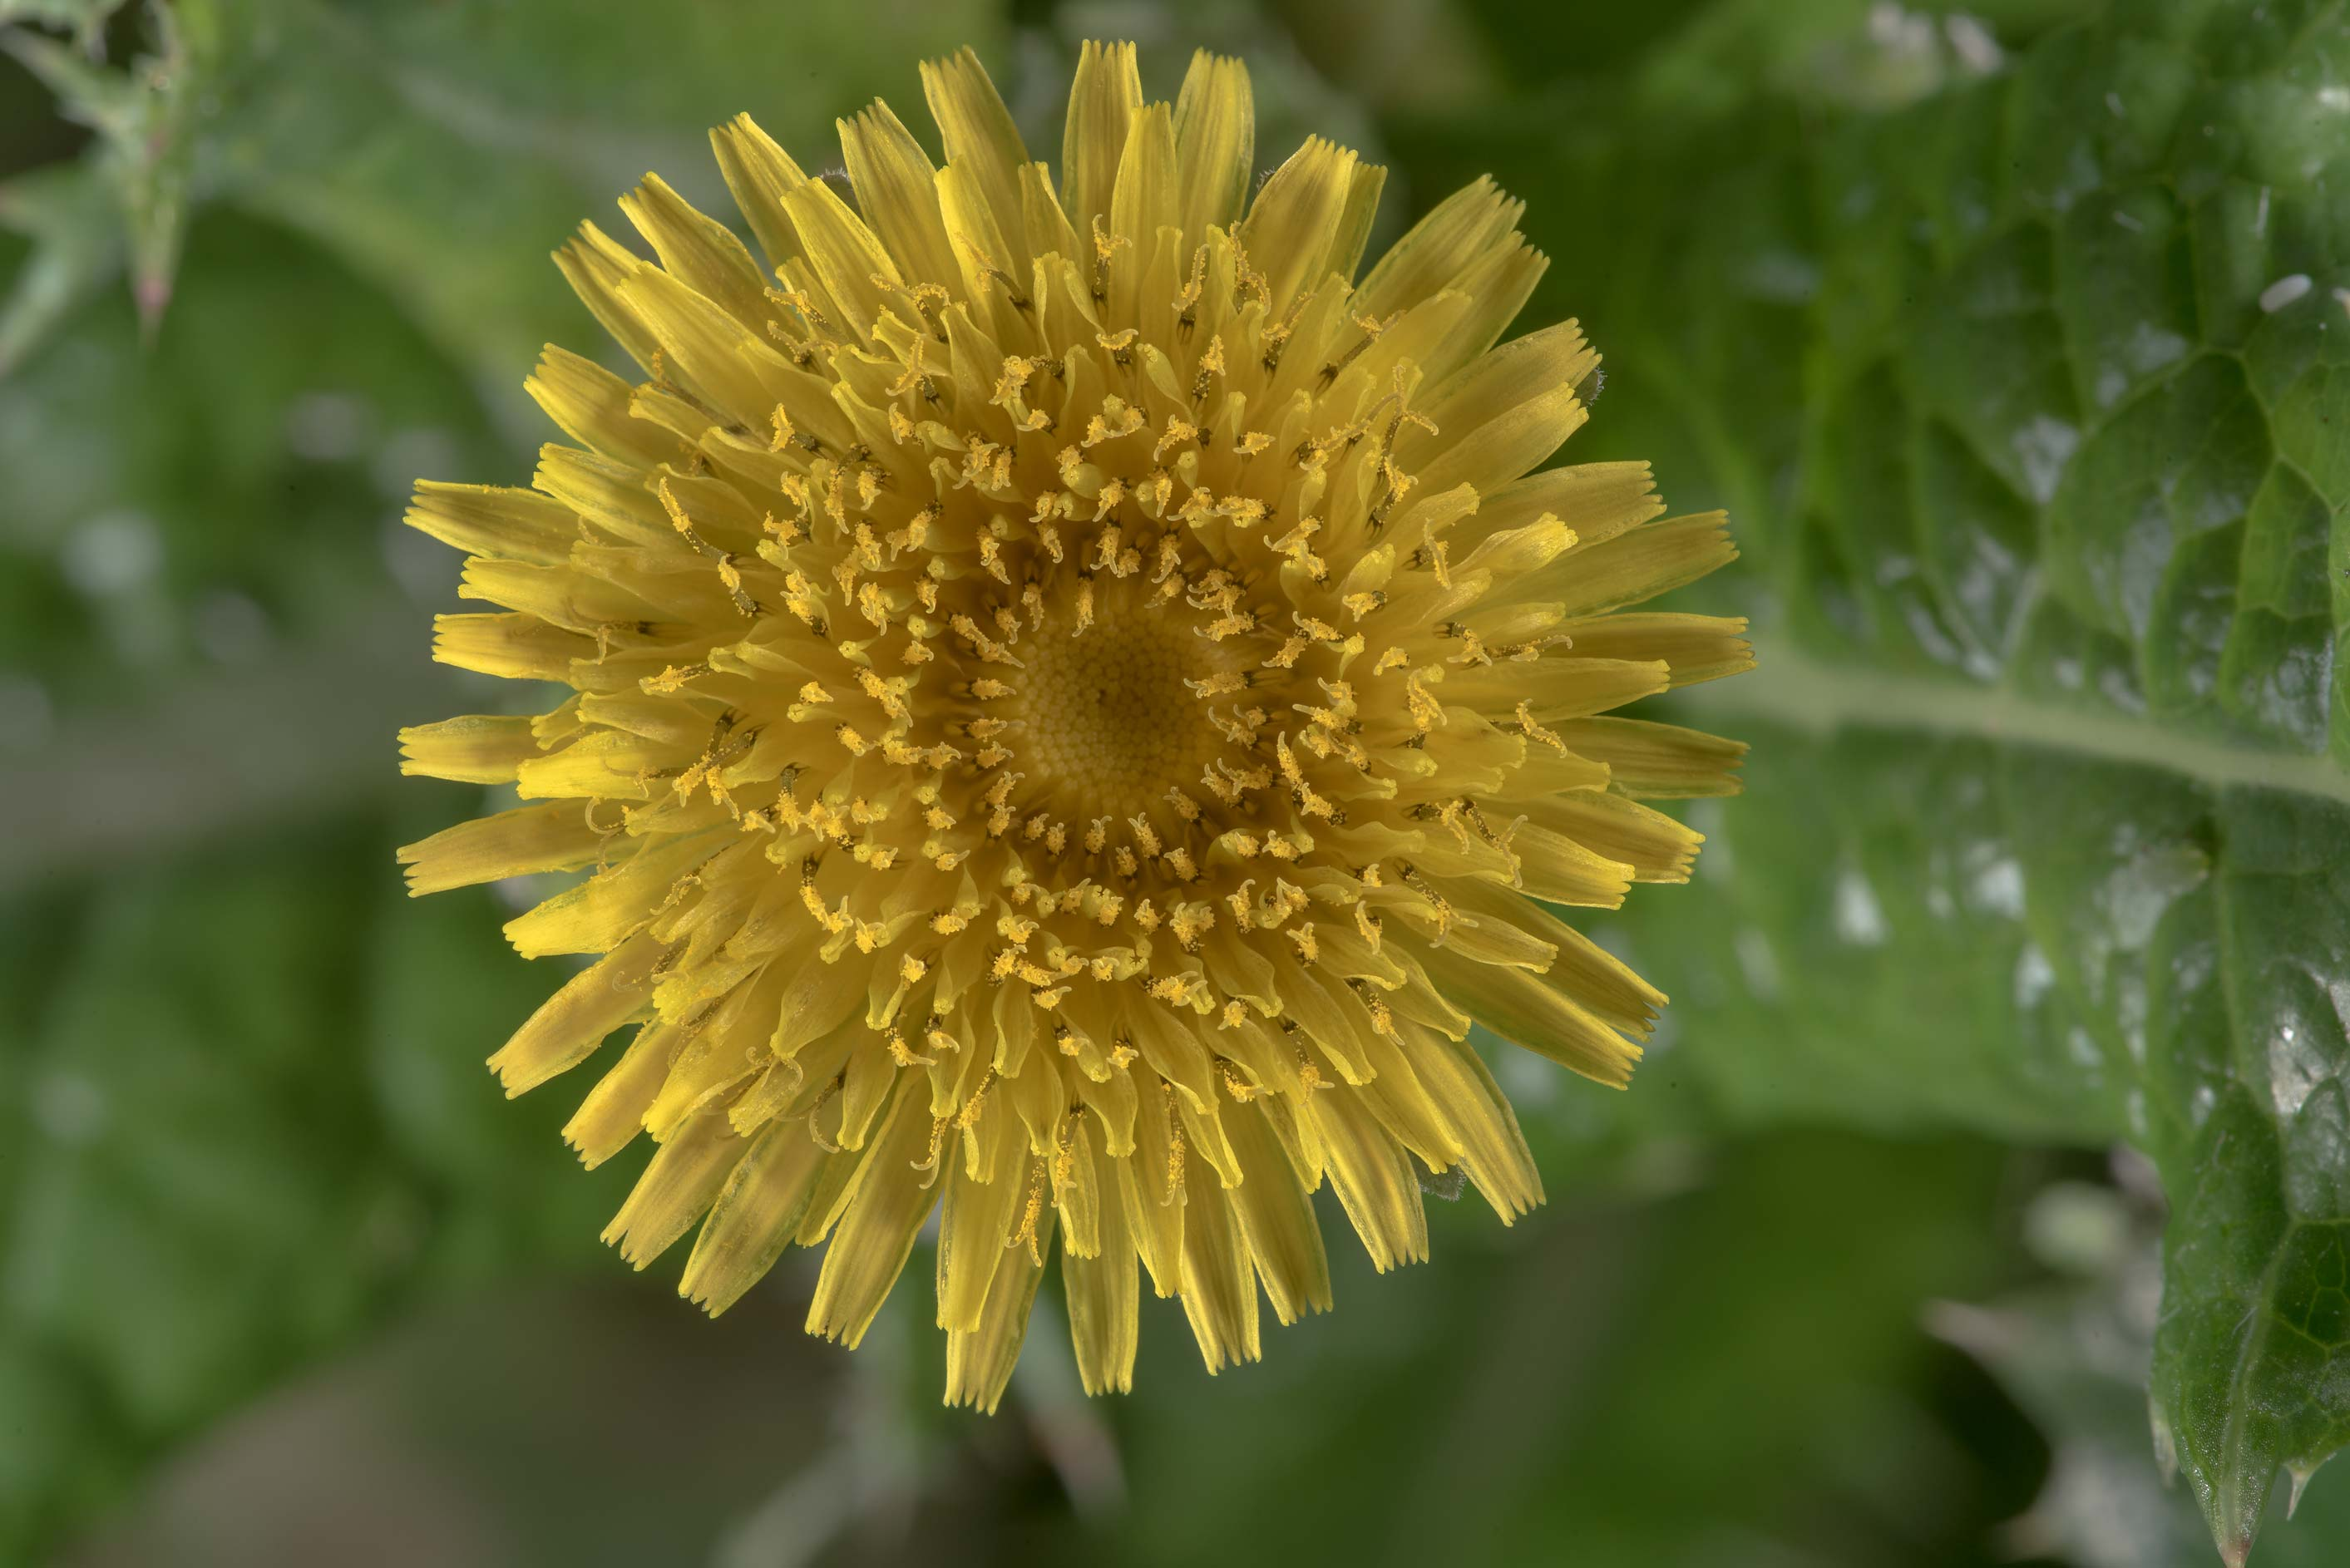 Sow thistle (Sonchus oleraceus) in Antique Rose Emporium. Independence, Texas